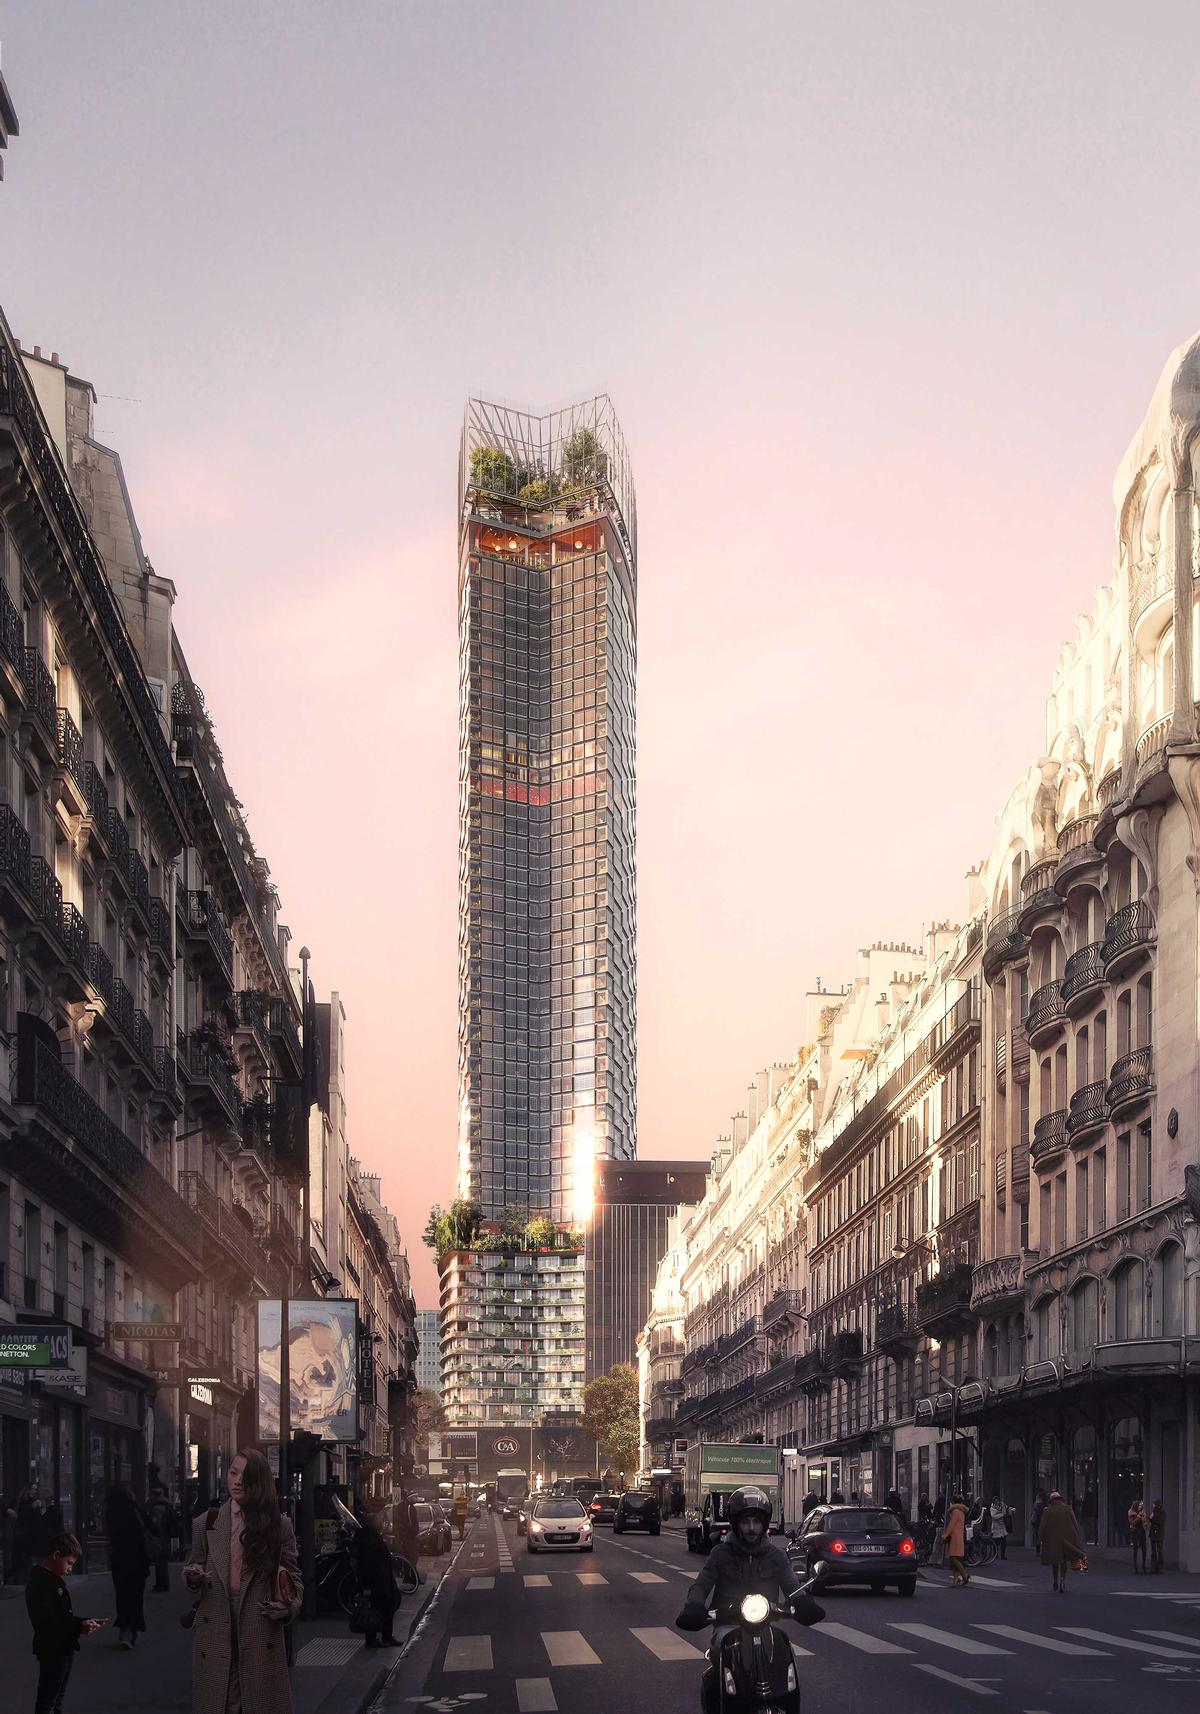 The project, expected to cost €300m, is expected to start in earnest in 2019. / Nouvelle AOM and Luxigon